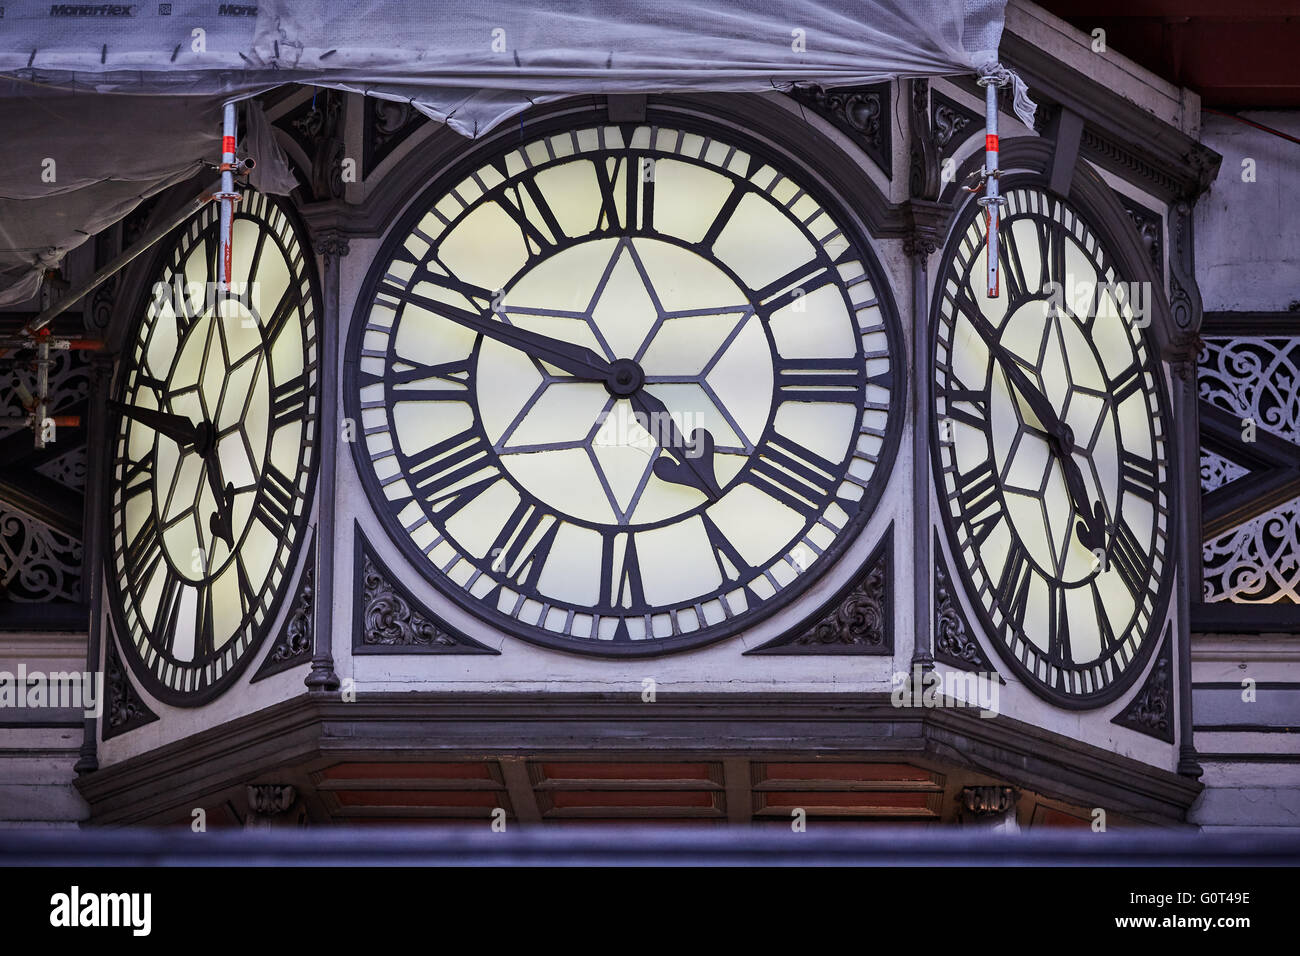 London paddington railway station clock large 3 faces roman numeral scaffolding restoration clock face hands time - Stock Image